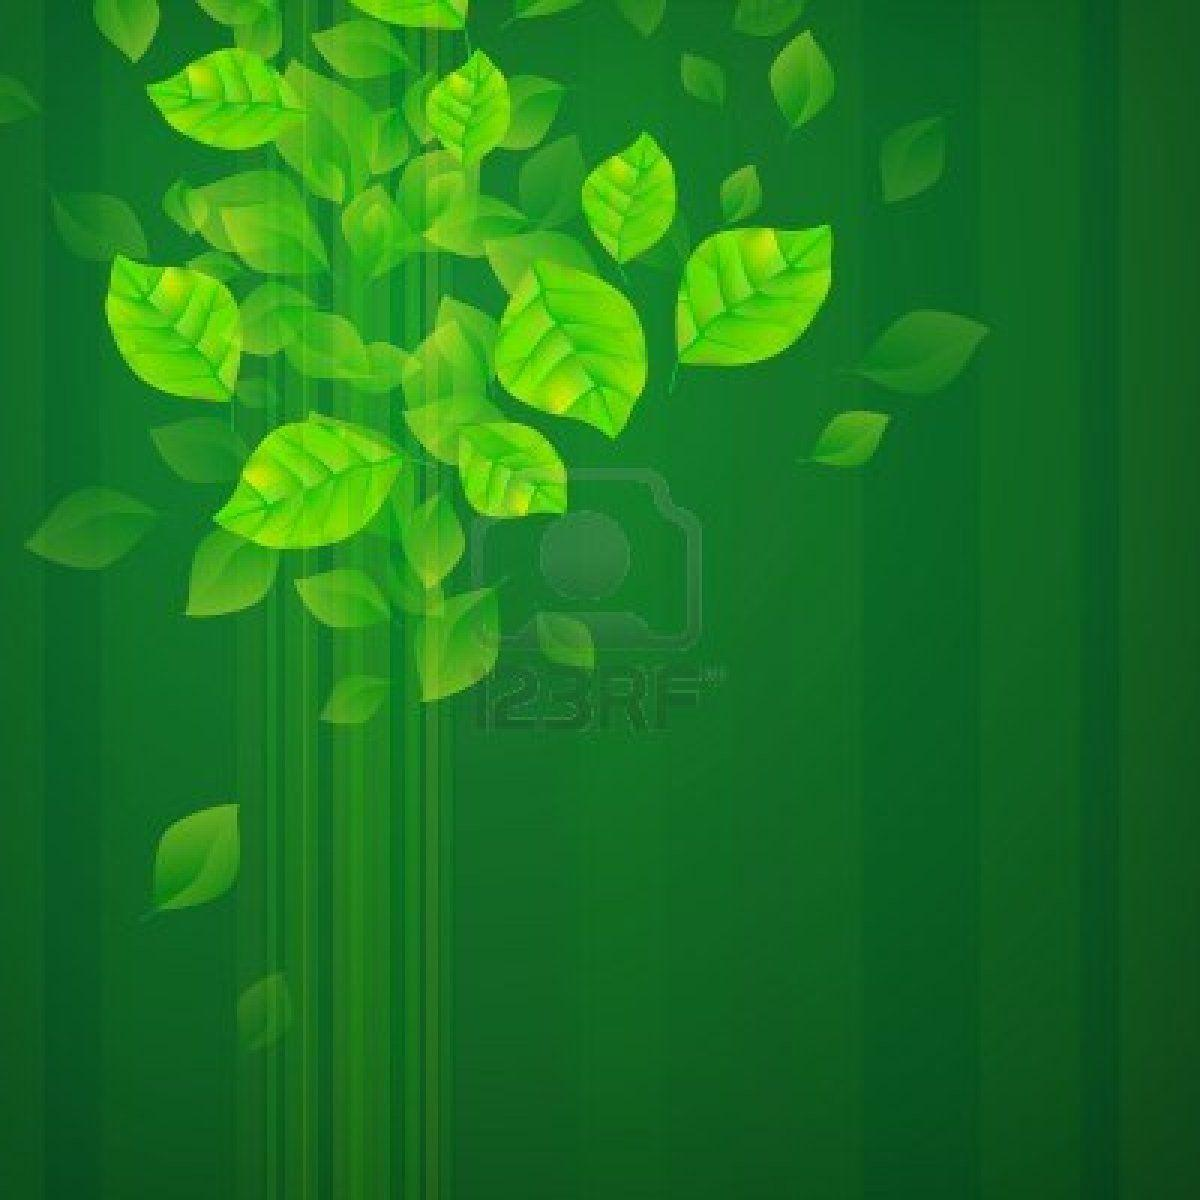 Green Backgrounds 17